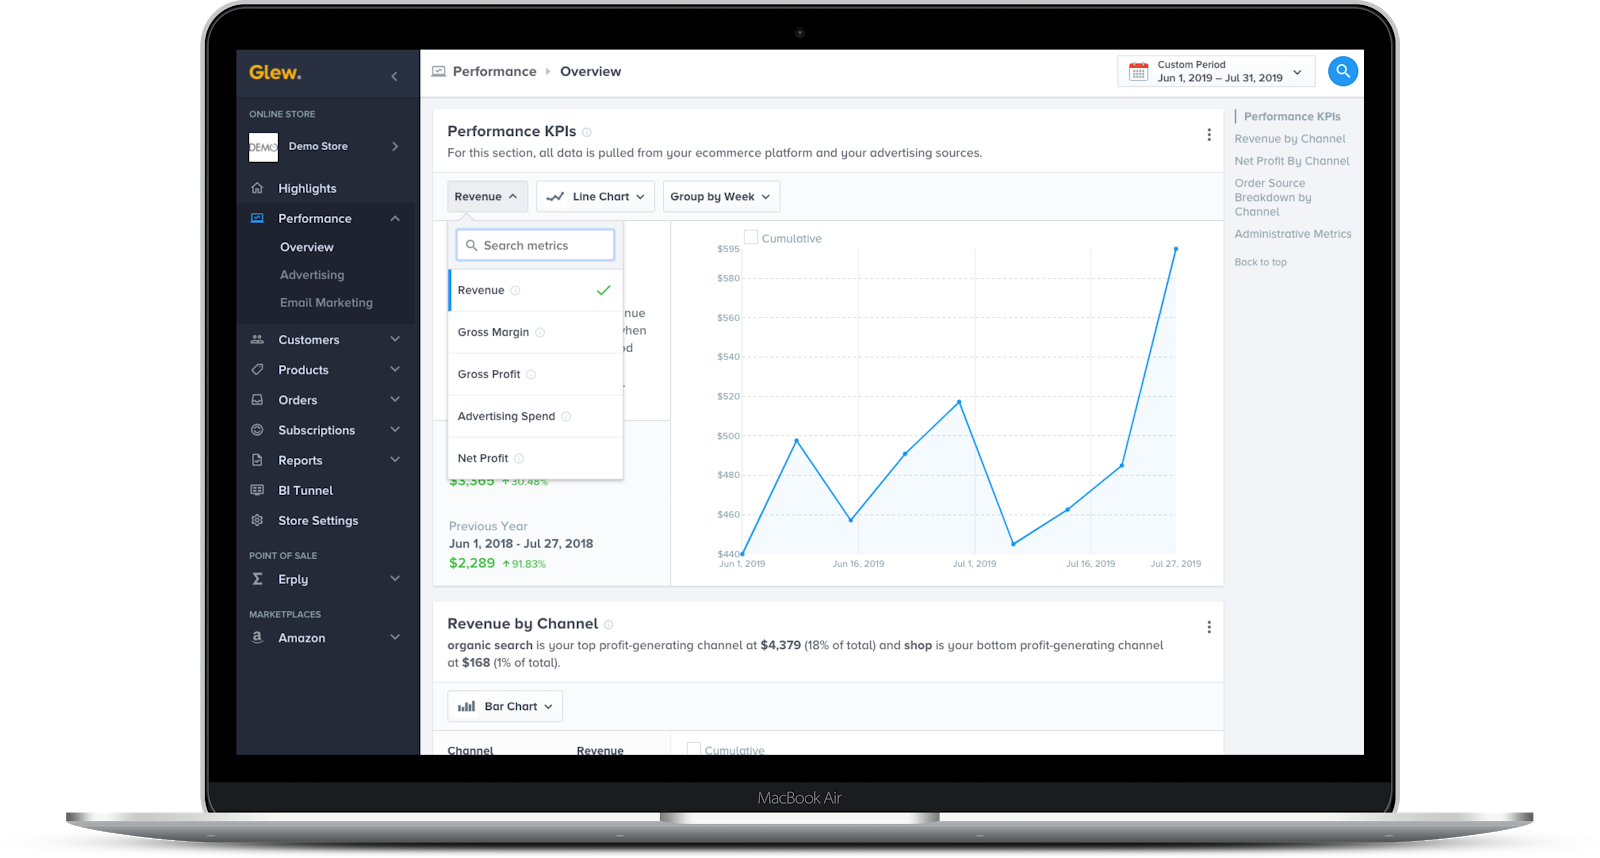 See it in Glew: Performance KPIs in Glew, updated hourly and available across your organization, including orders, revenue, margin, profit, ad spend, AOV, site traffic, conversion and more